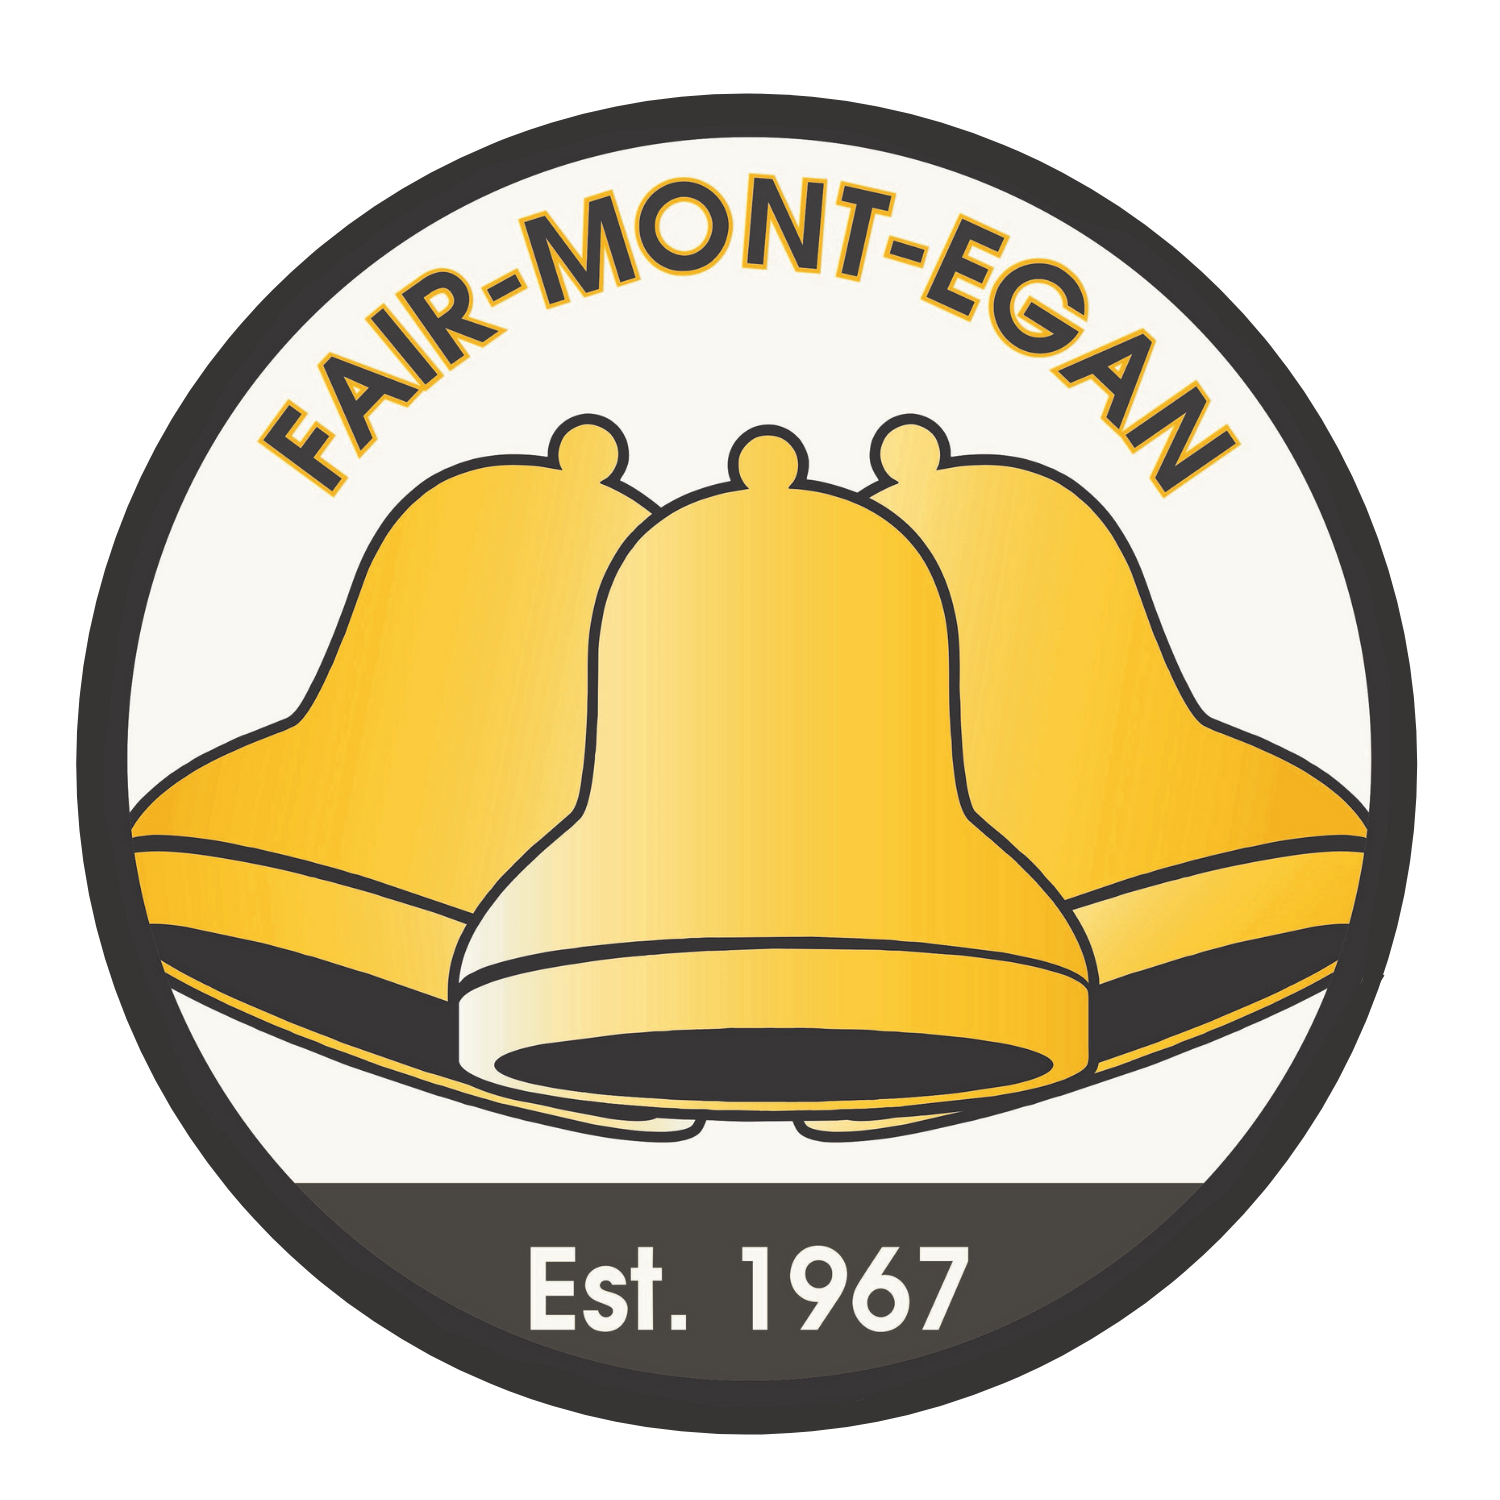 Fair-Mont-Egan School District #3